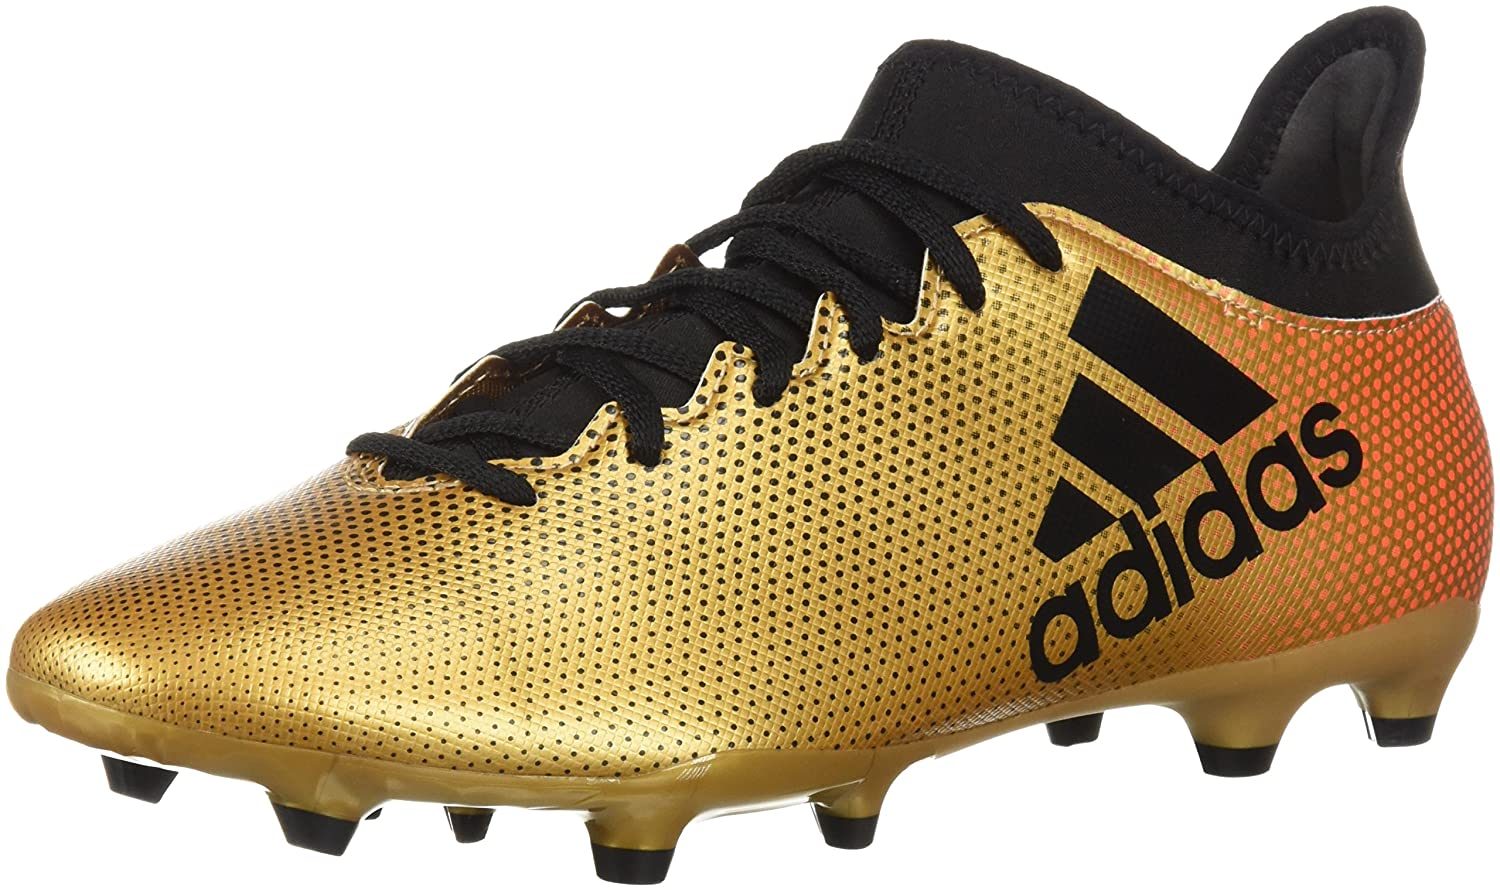 adidas Men's X 17.3 Fg Soccer Shoe B071LF68FC 12.5 D(M) US|Tactile Gold/Core Black/Solar Red